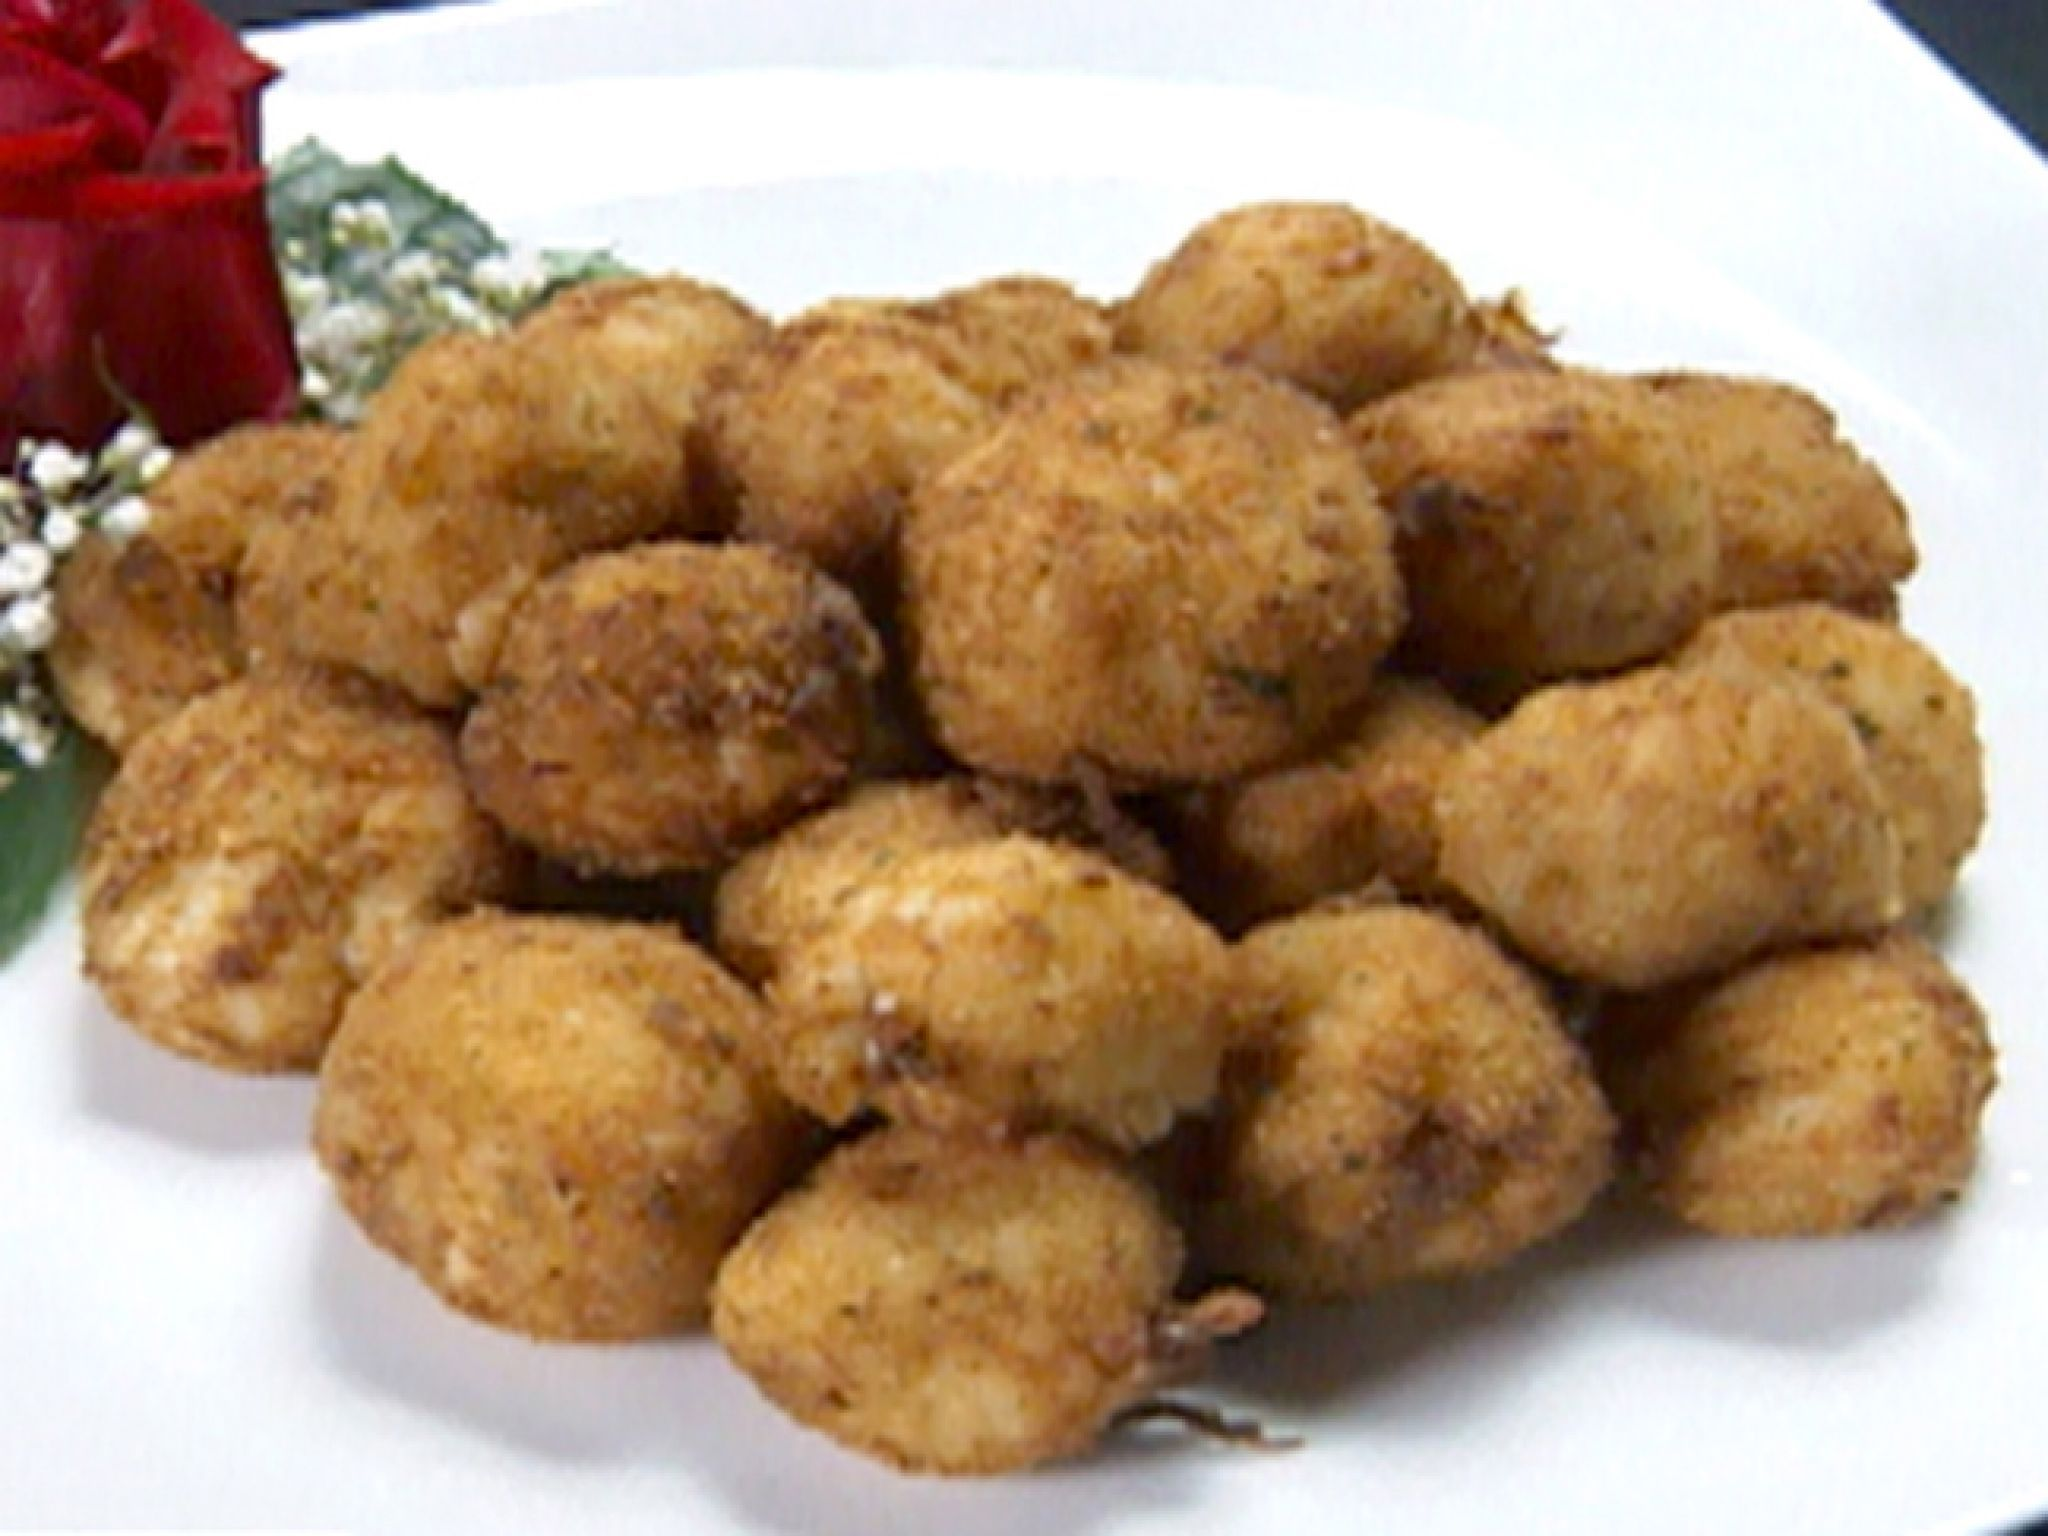 Crab and Sushi Rice Fritters recipe from Robert Irvine via Food Network